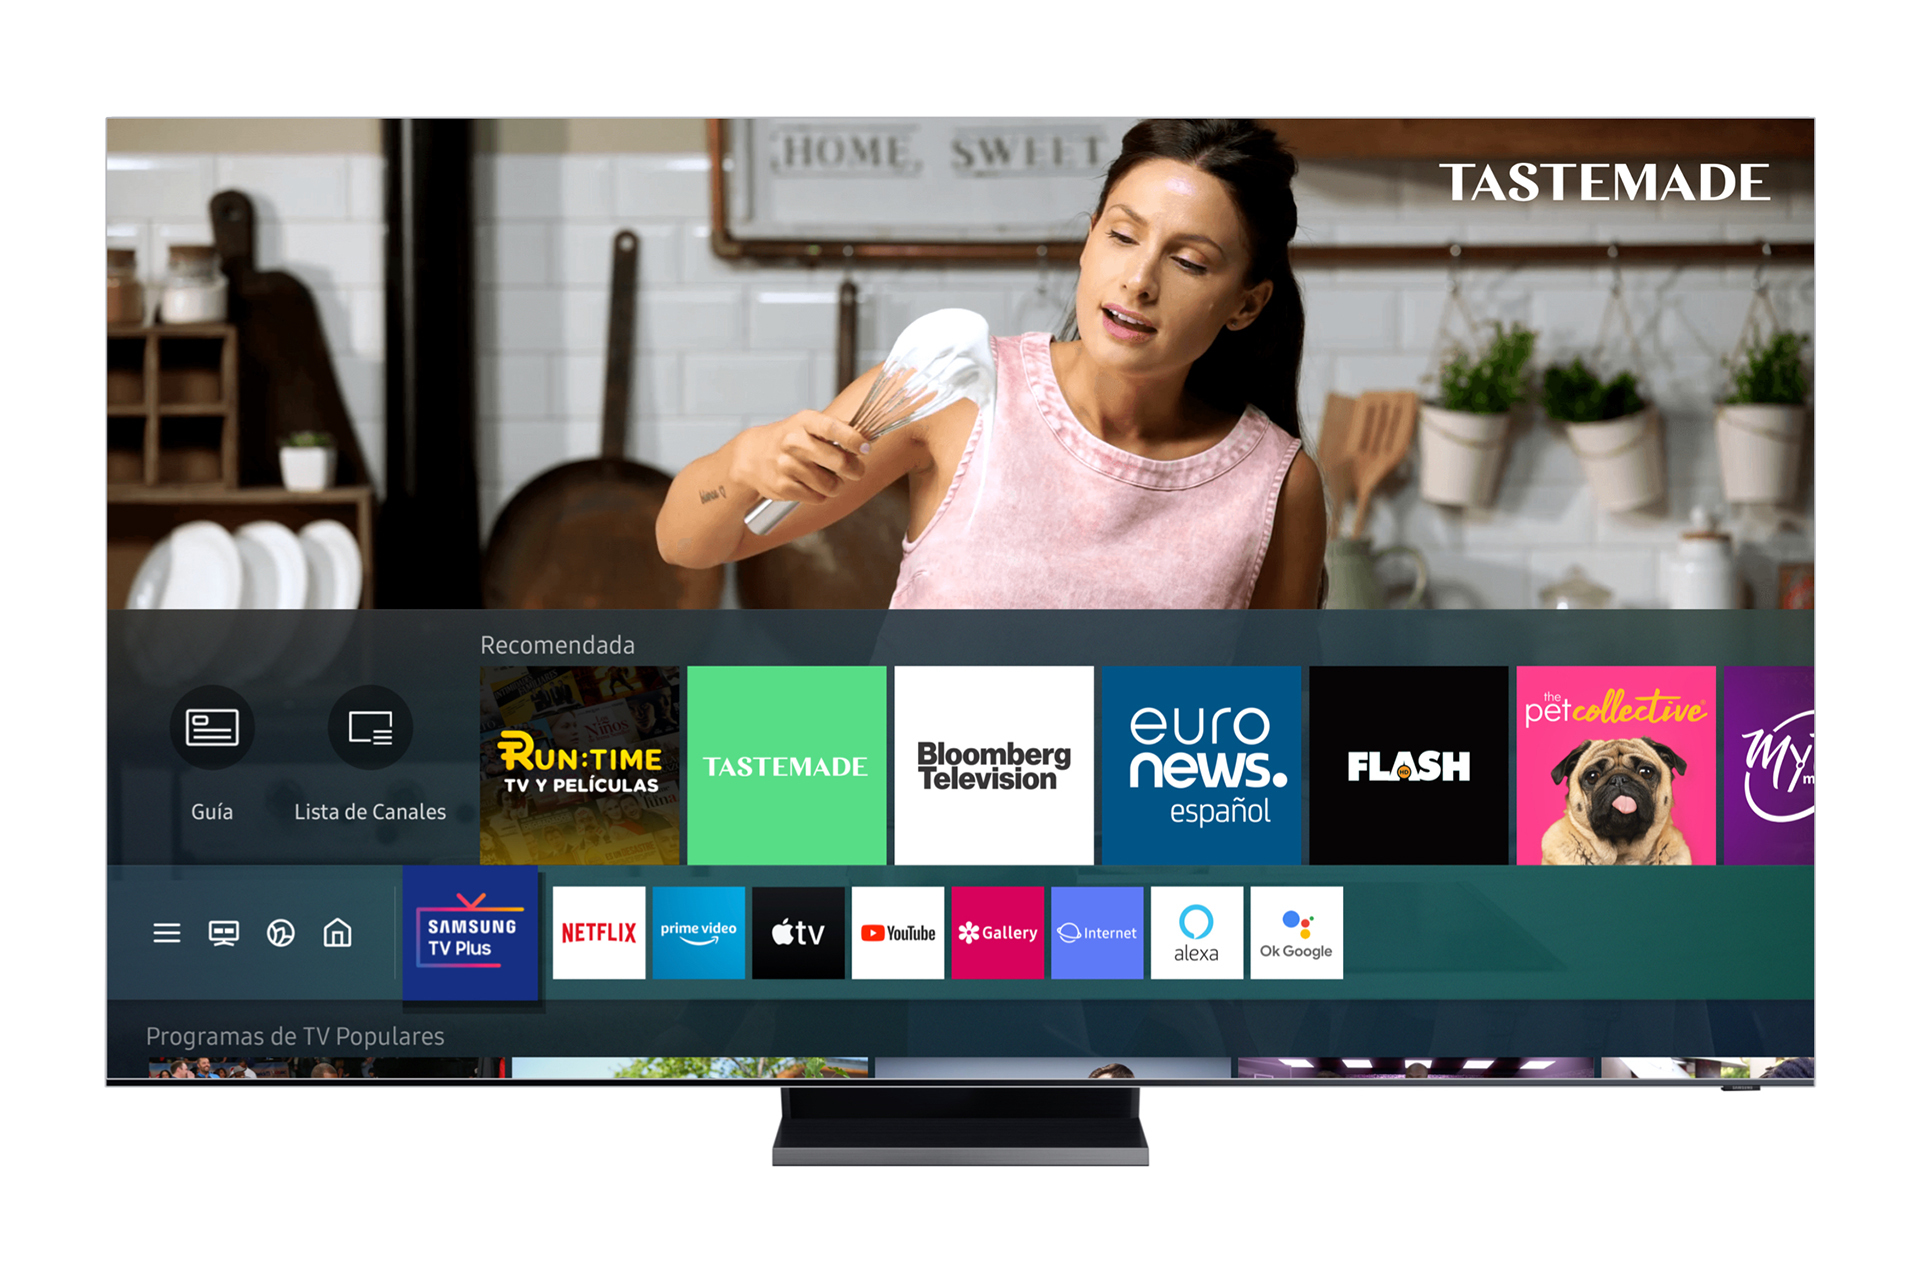 Samsung TV Plus llega a México, la plataforma de streaming gratuito